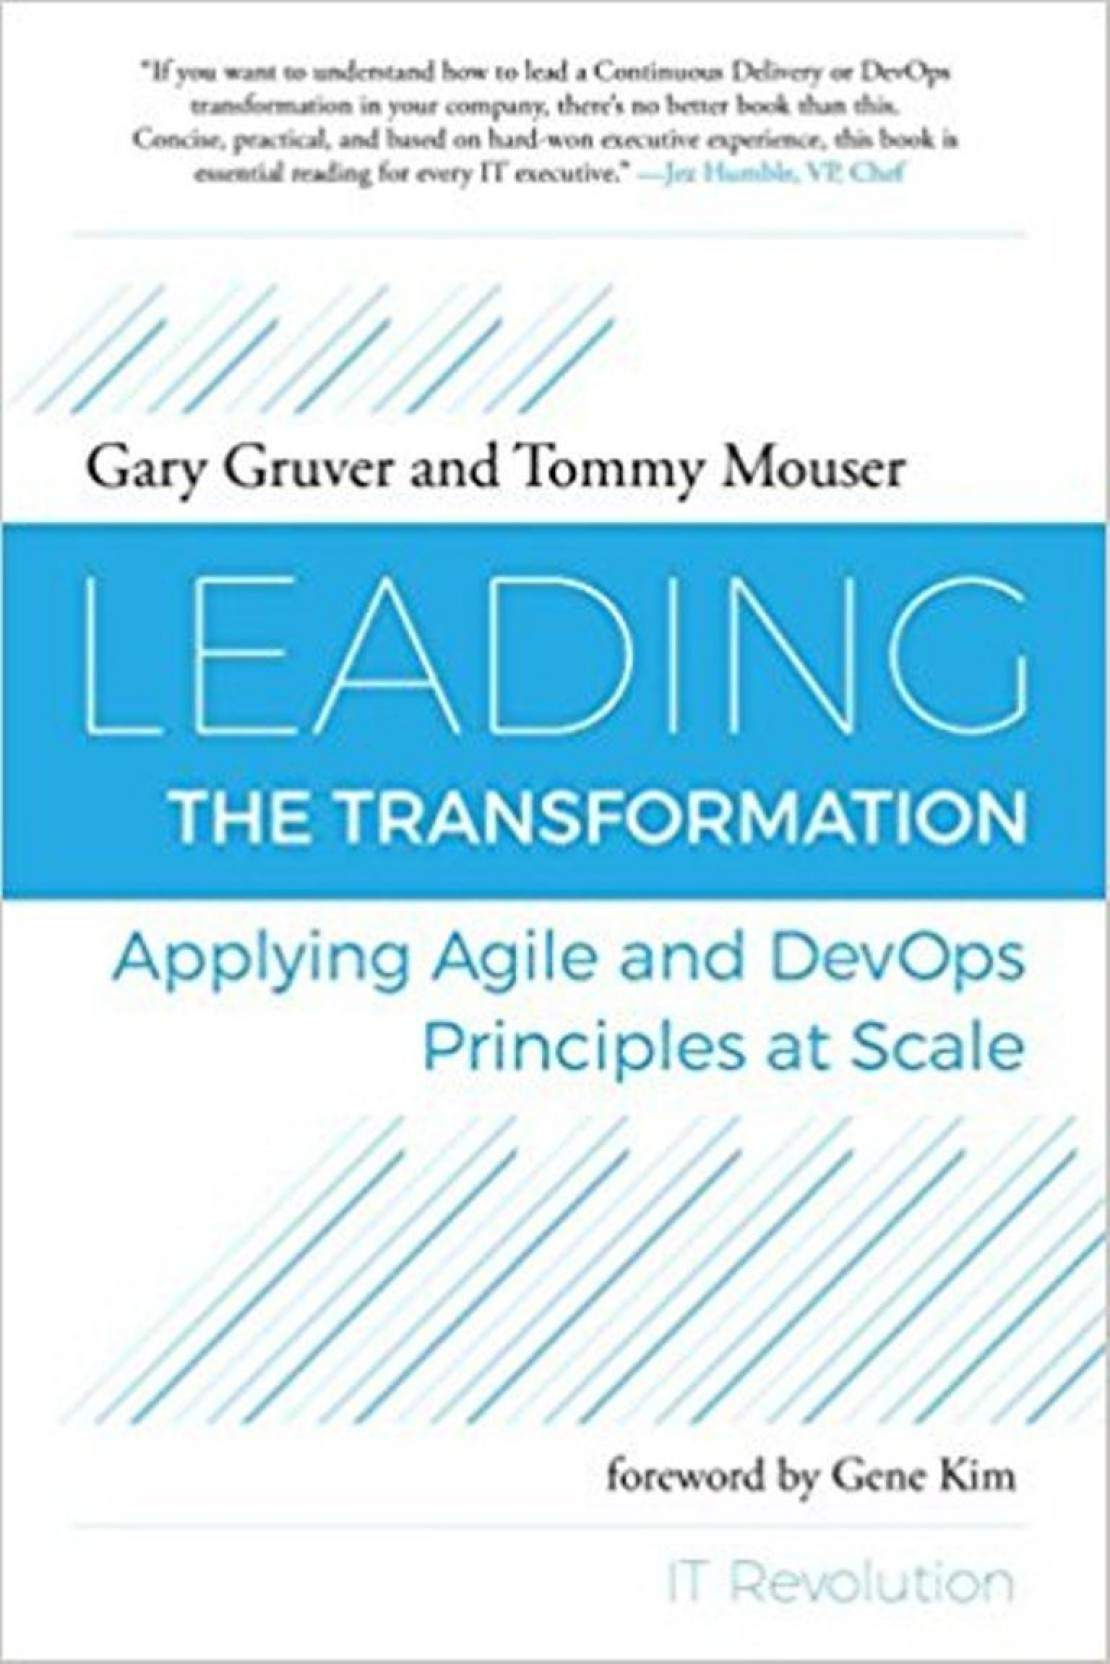 Leading the Transformation: Applying Agile and DevOps